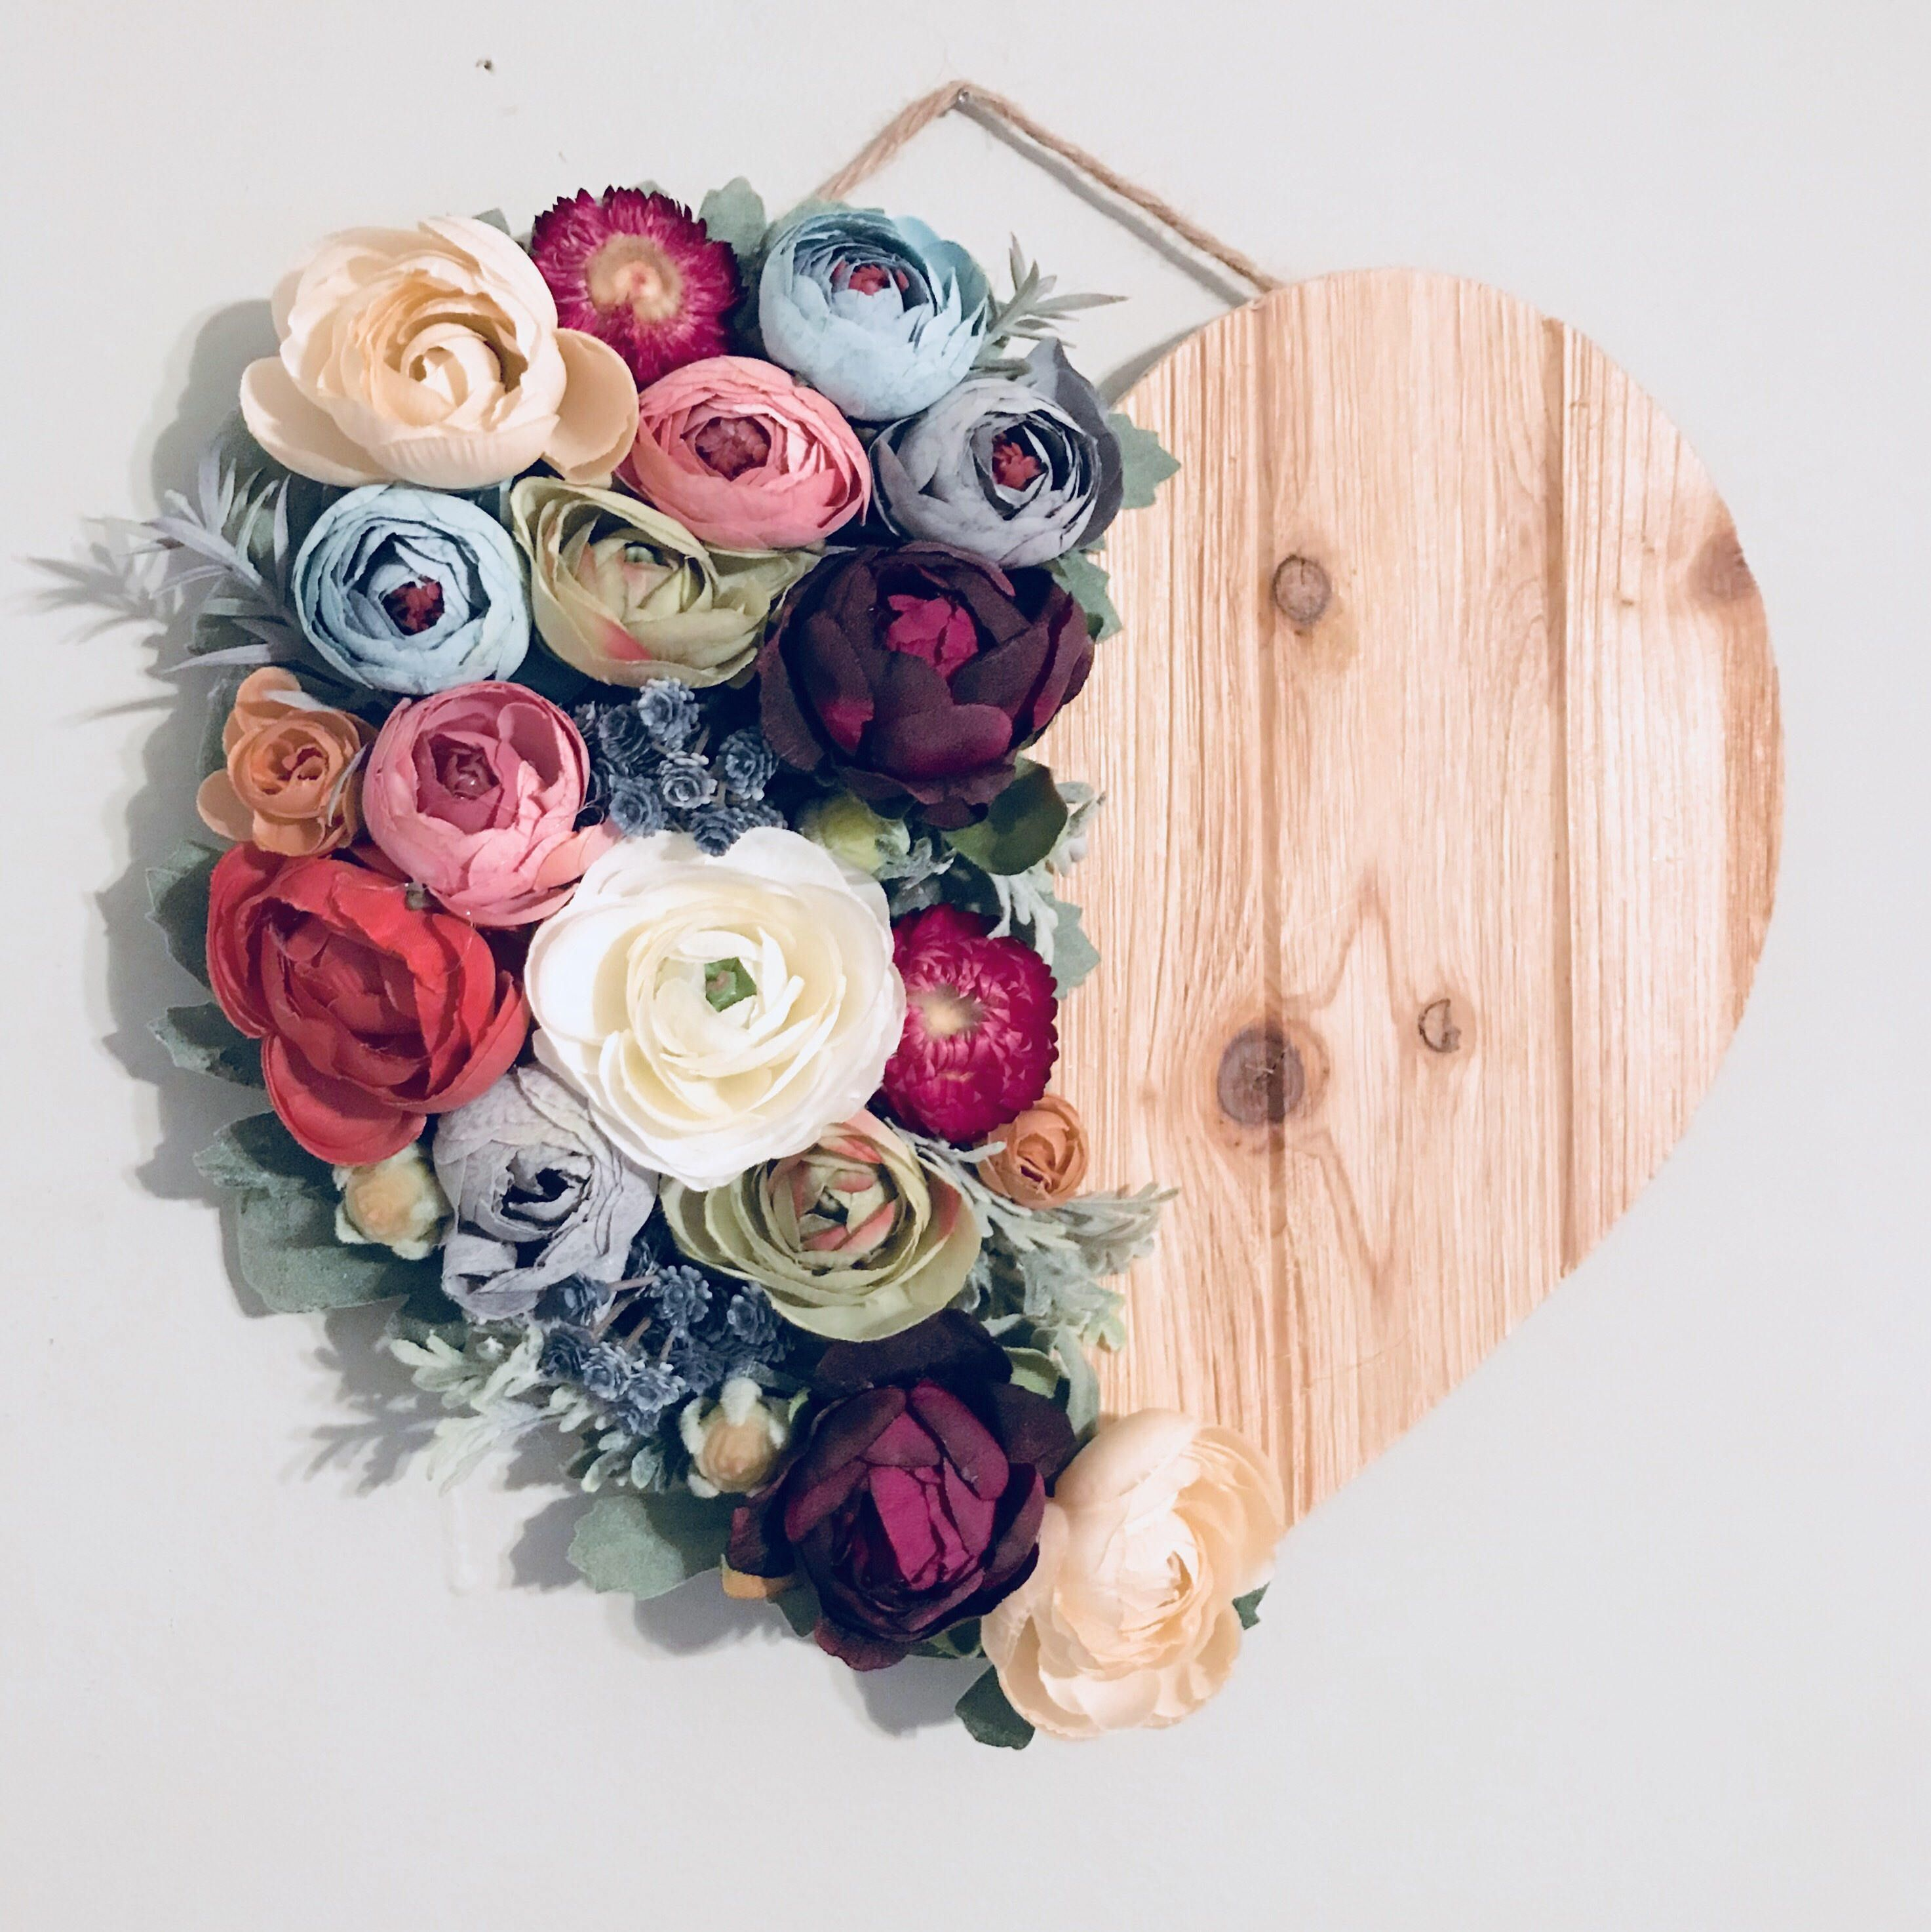 Floral Heart Floral Wall Hanging Wood Heart Flower Heart Nursery Heart Wall Hanging Flower Wall Art Flower Wall Decor Nursery Decor & Floral Heart Floral Wall Hanging Wood Heart Flower Heart Nursery ...